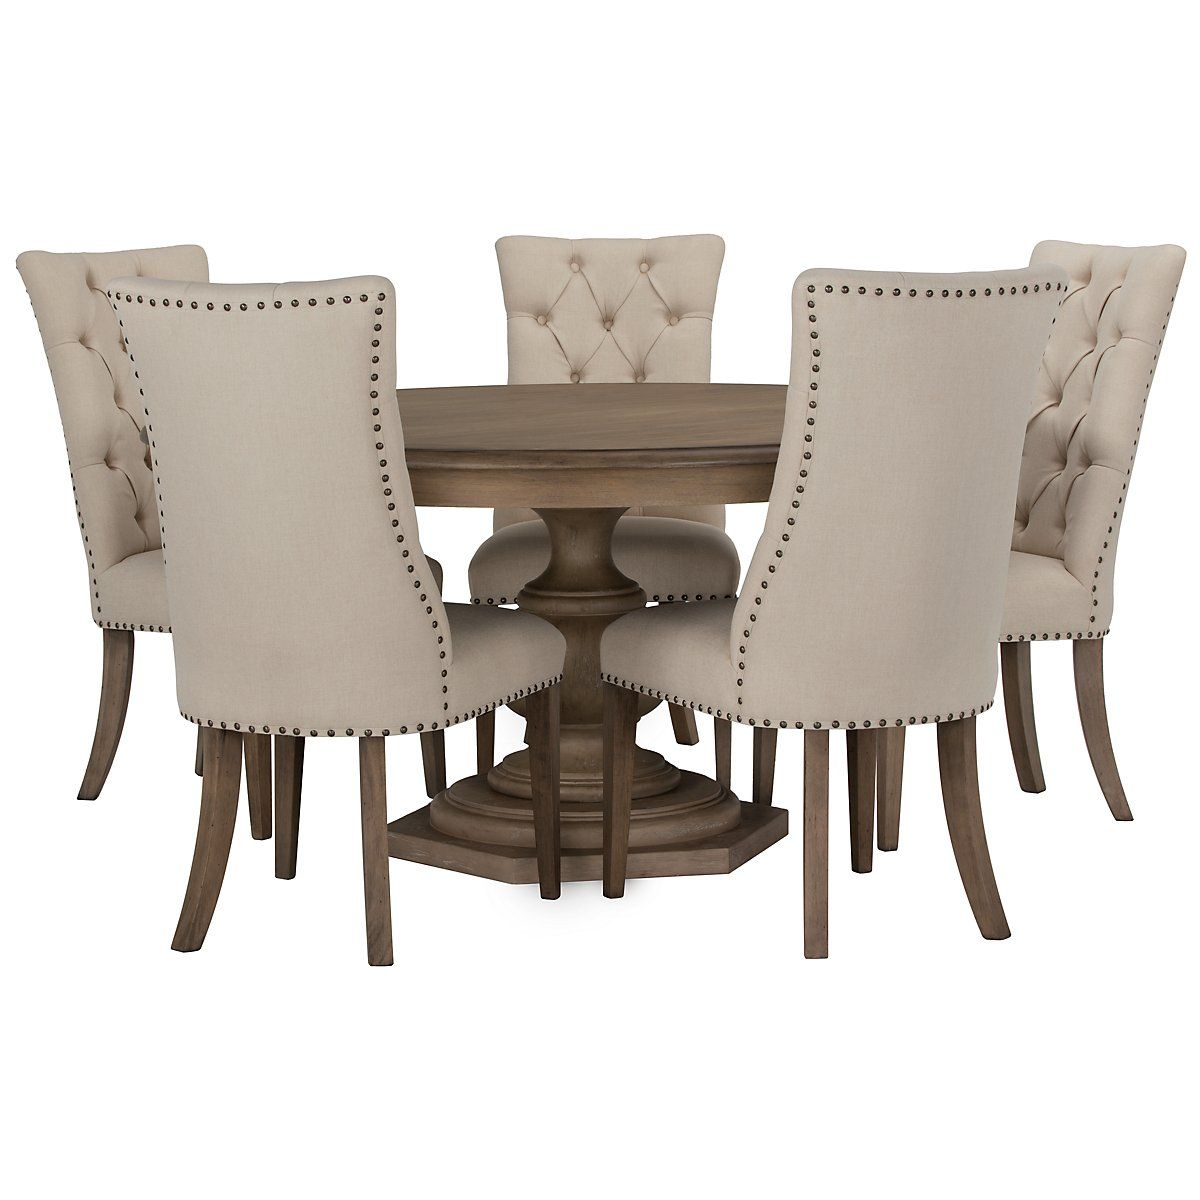 Round Dining Table And Chairs Haddie Light Tone Round Table And 4 Upholstered Chairs In